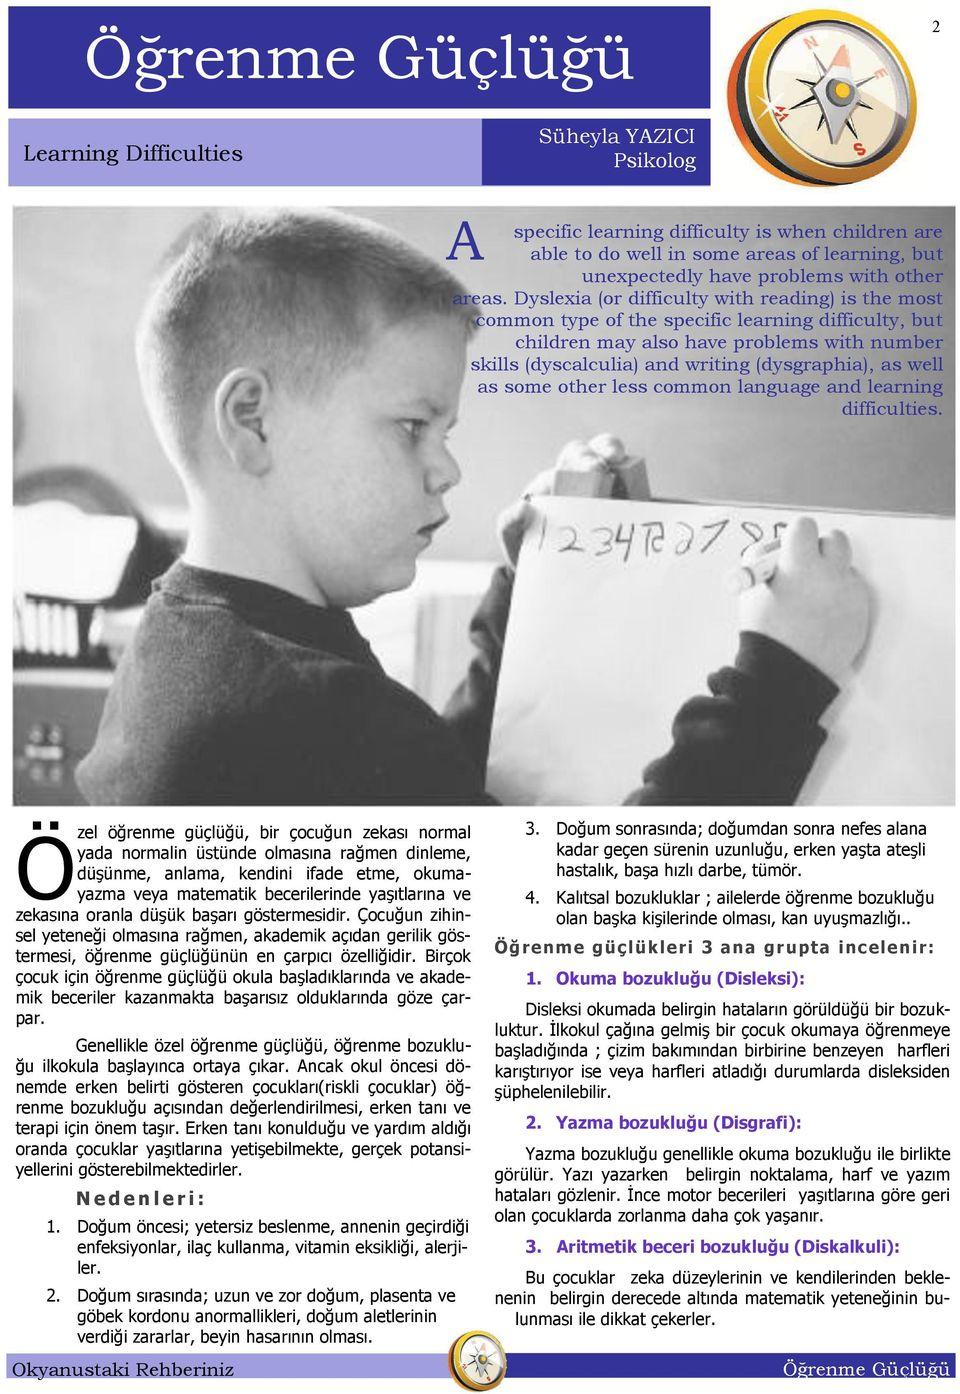 Dyslexia (or difficulty with reading) is the most common type of the specific learning difficulty, but children may also have problems with number skills (dyscalculia) and writing (dysgraphia), as